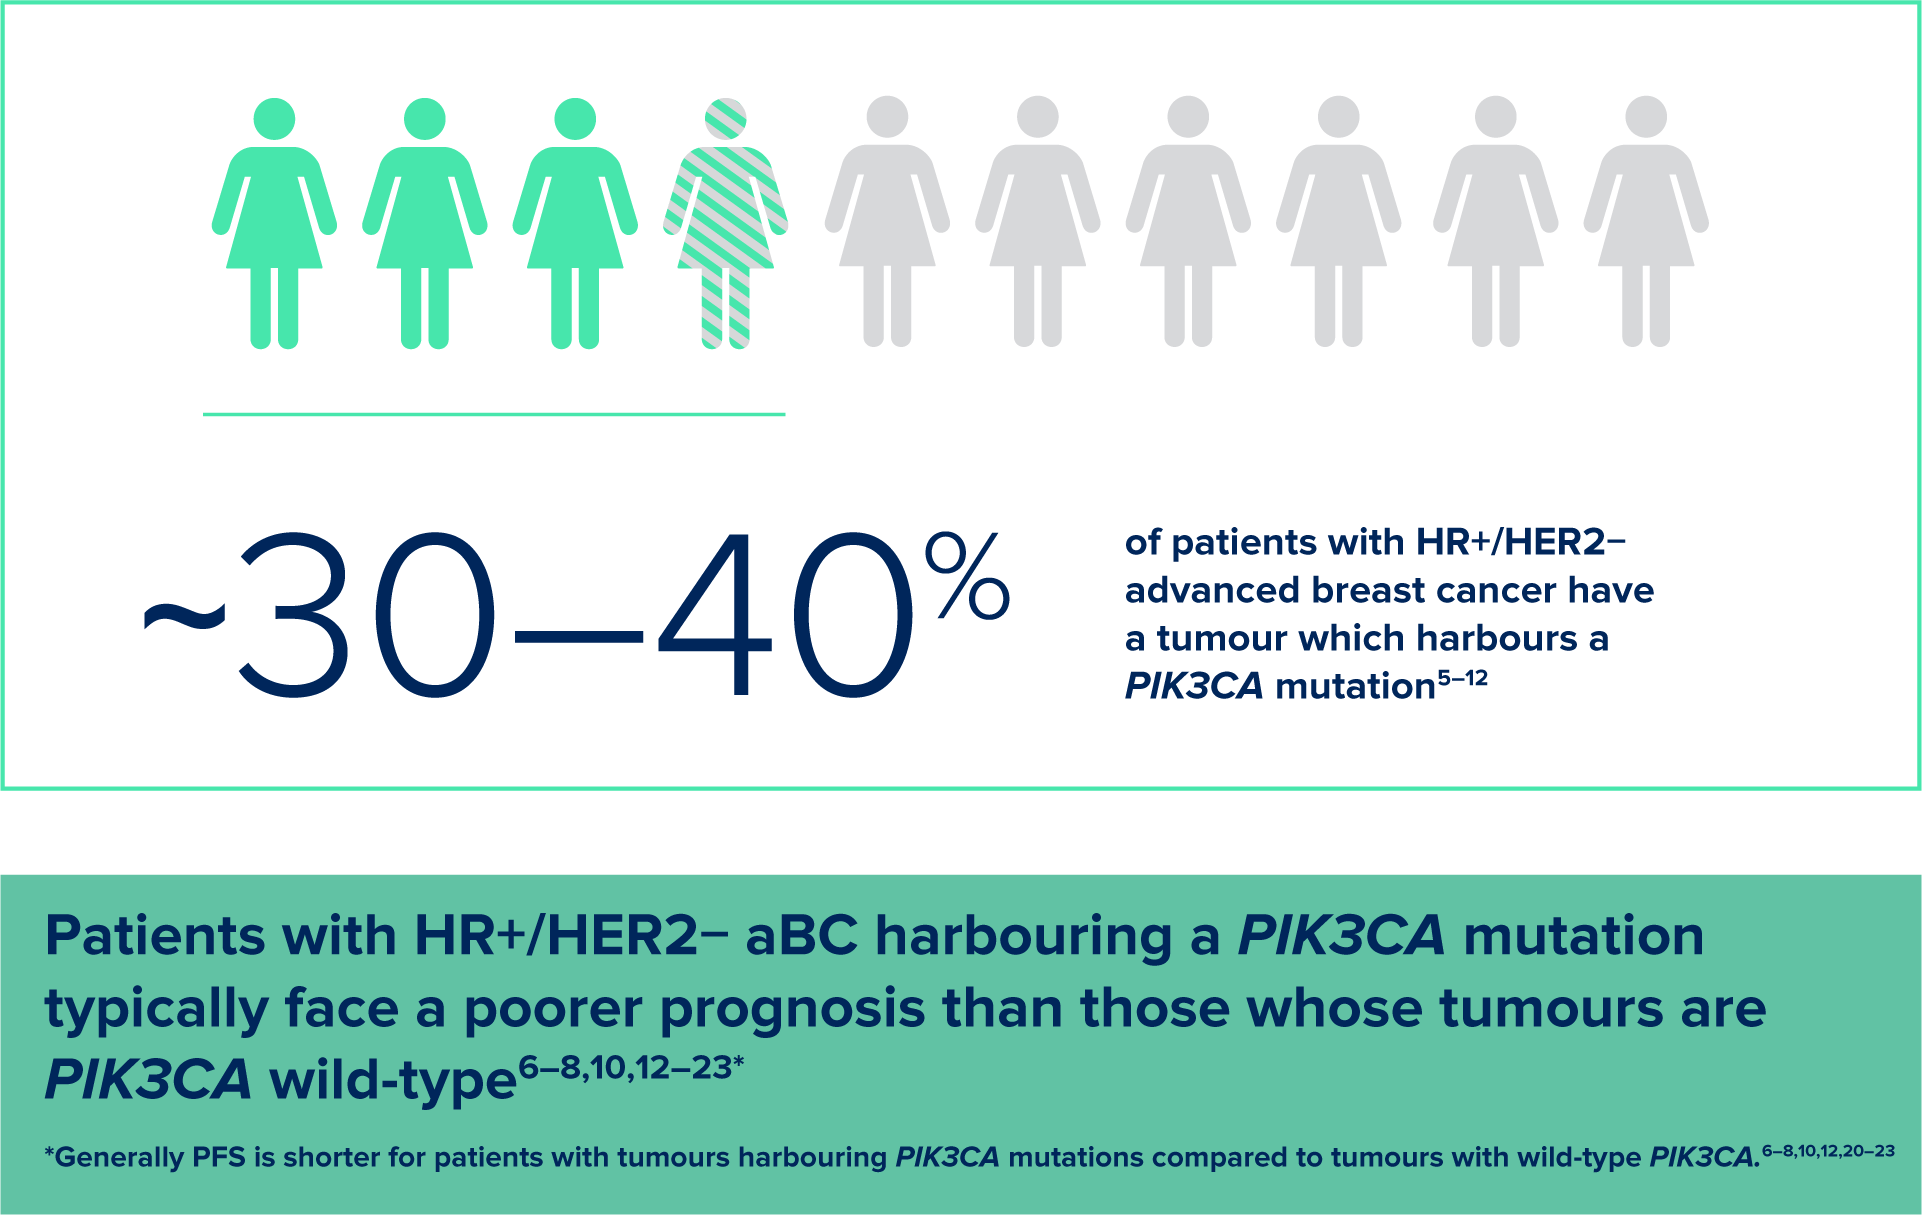 Blue people graphic. ~30-40% of patients with HR+/HER2- advanced breast cancer have a tumour which harbours a PIK3CA mutation